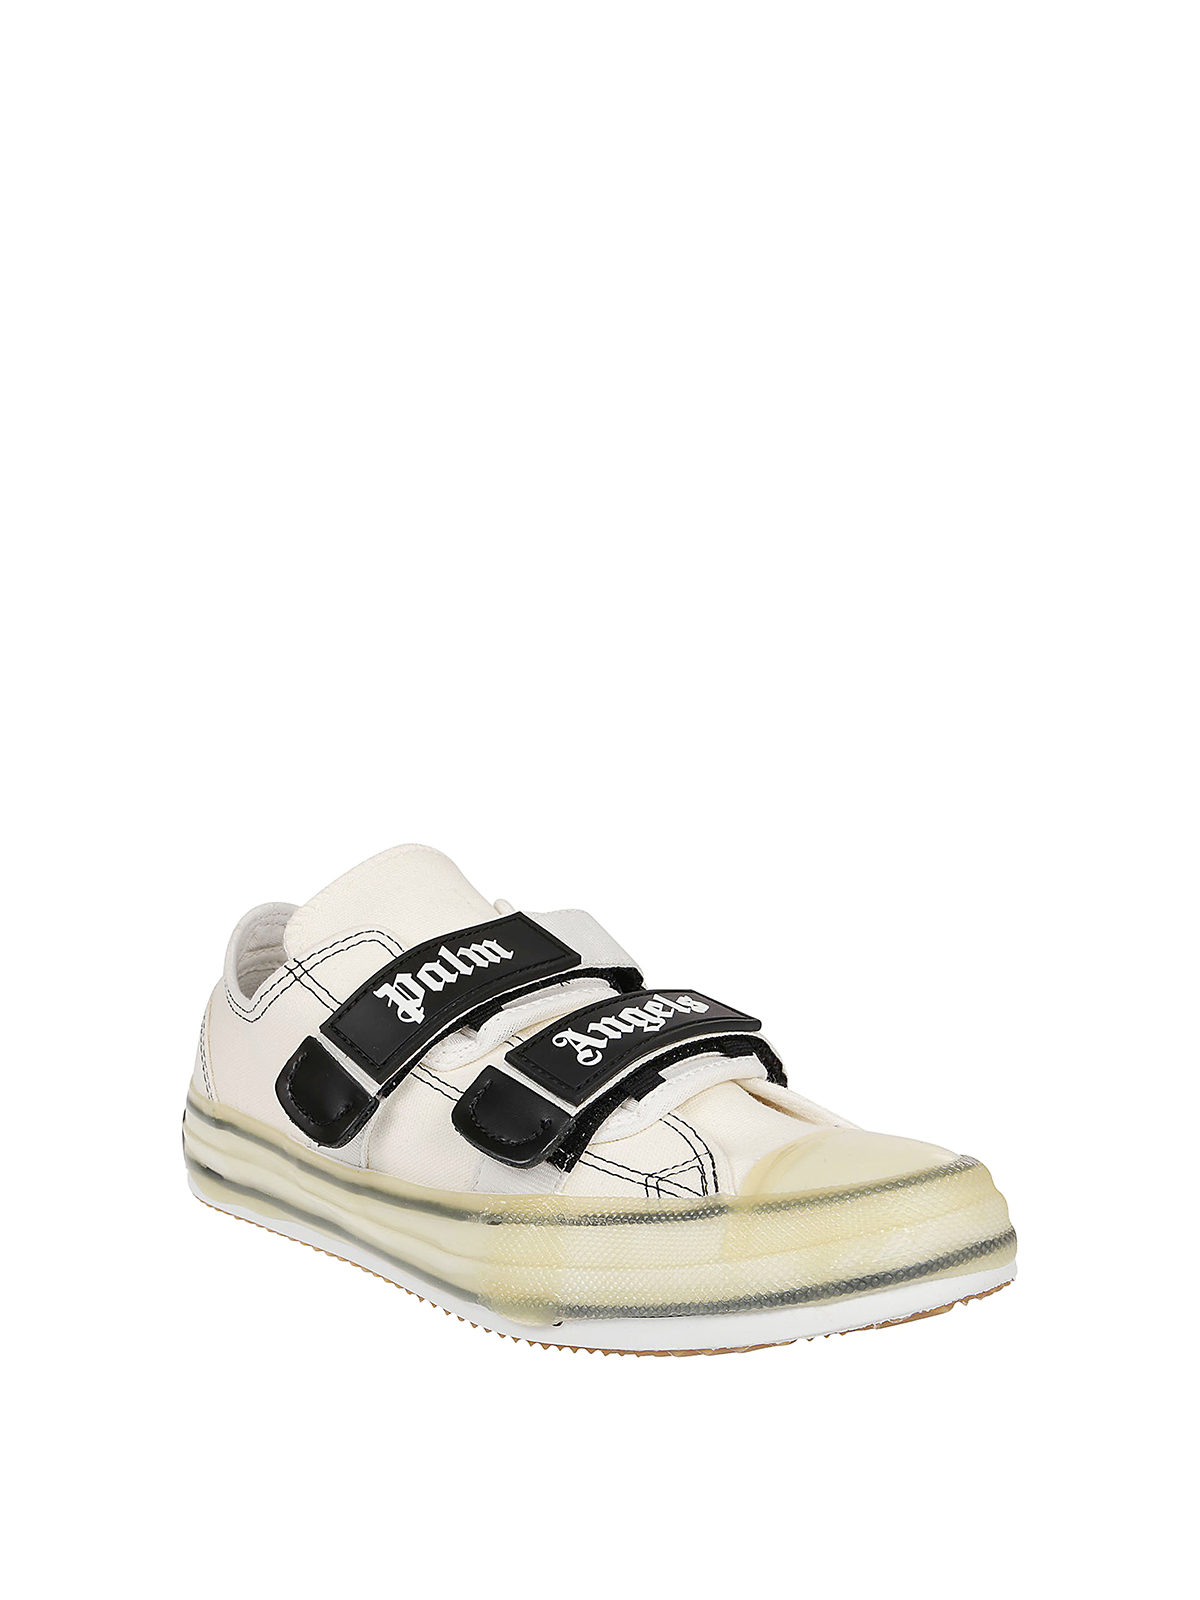 Palm Angels - Vulcanized sneakers